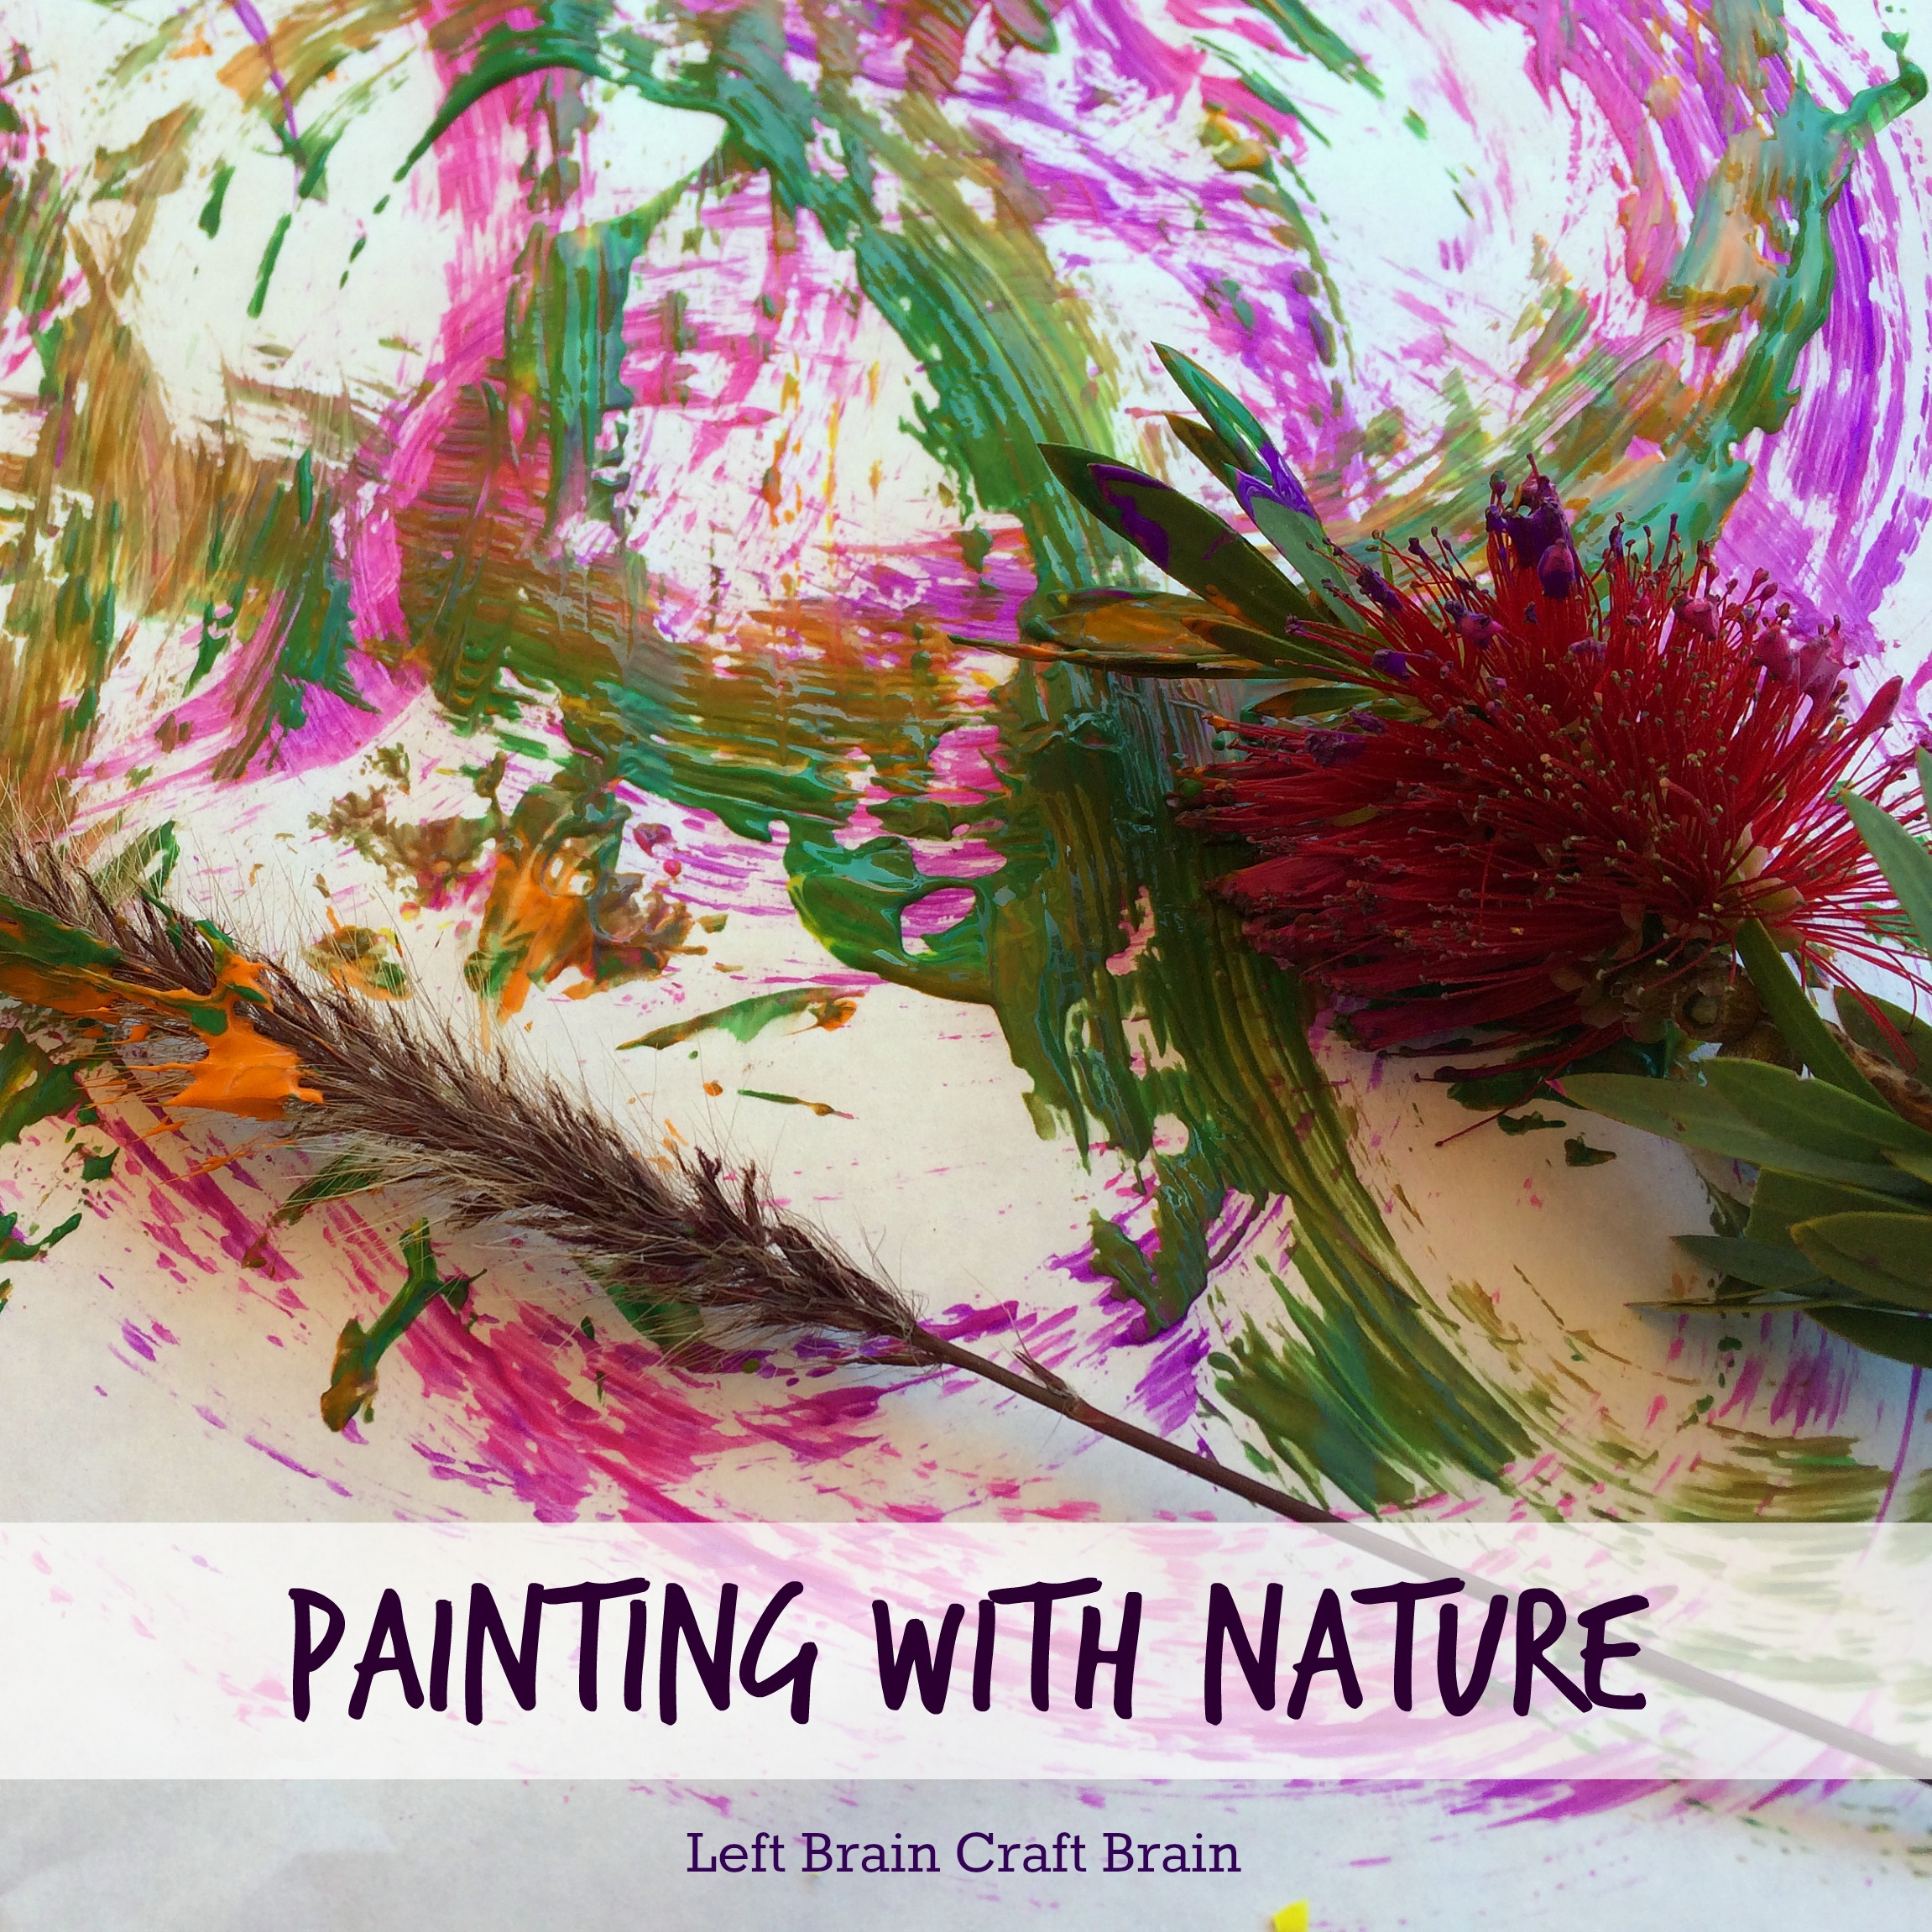 painting with nature natural paintbrushes